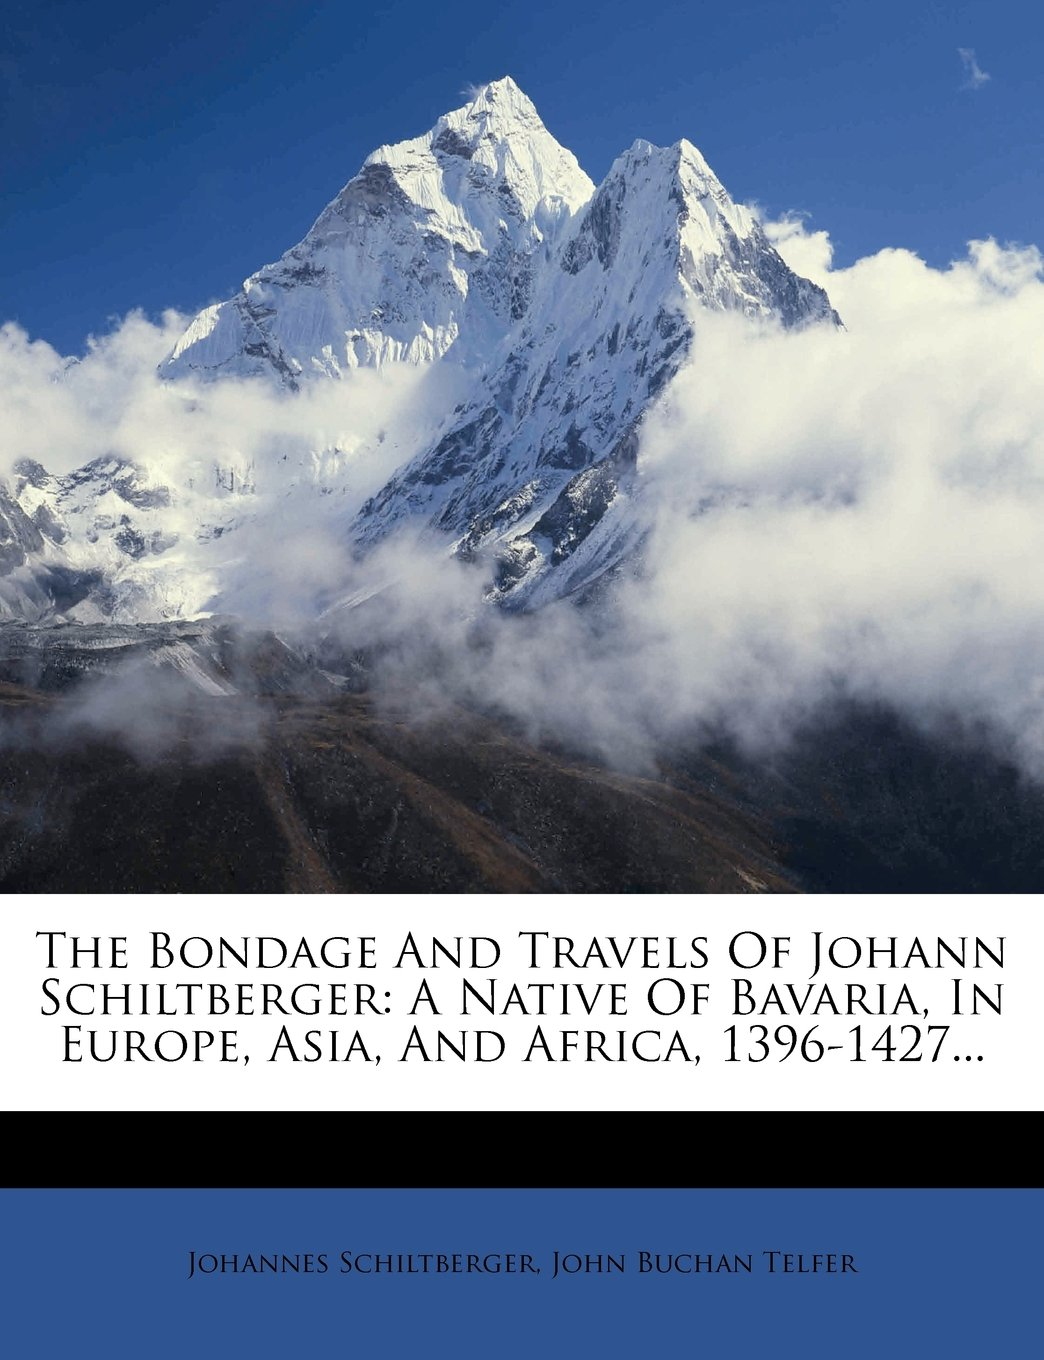 The Bondage And Travels Of Johann Schiltberger: A Native Of Bavaria, In Europe, Asia, And Africa, 1396-1427... pdf epub